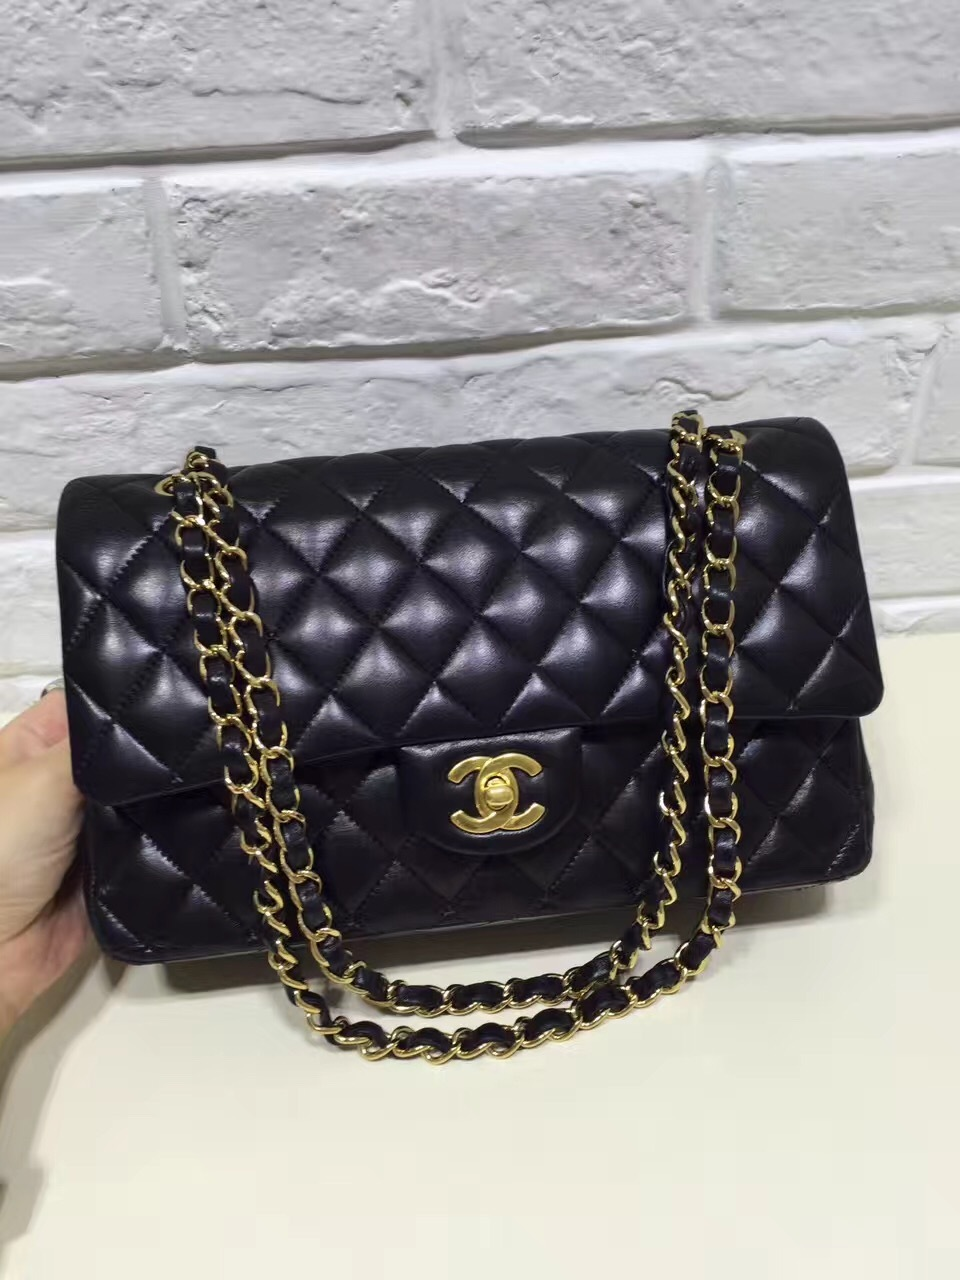 910f37fb3d7a Authentic Chanel Classic Black Quilted Lambskin Medium Double Flap ...